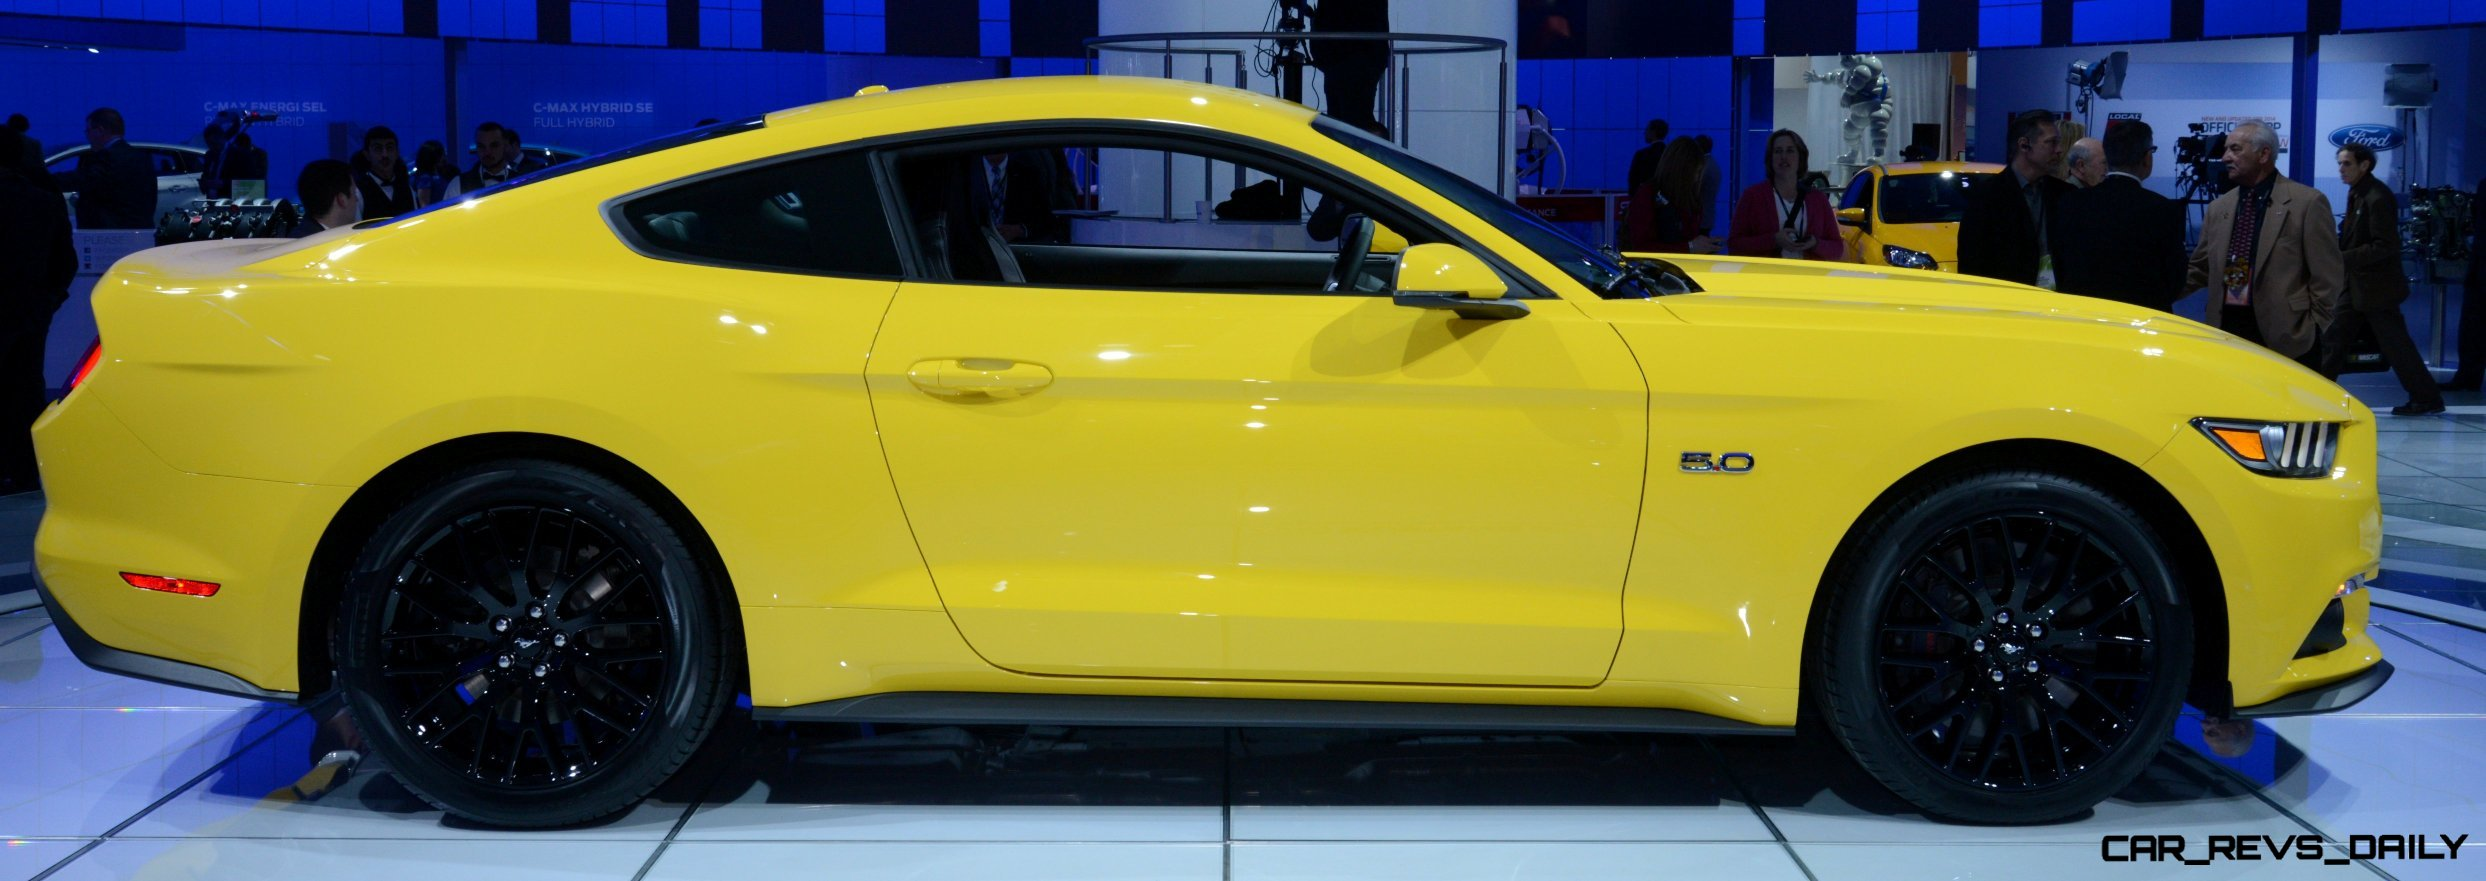 2015 Ford Mustang GT -- Mean, Lean and Ready To Brawl in Latest Real-Life Photos -- Yellow GT 17